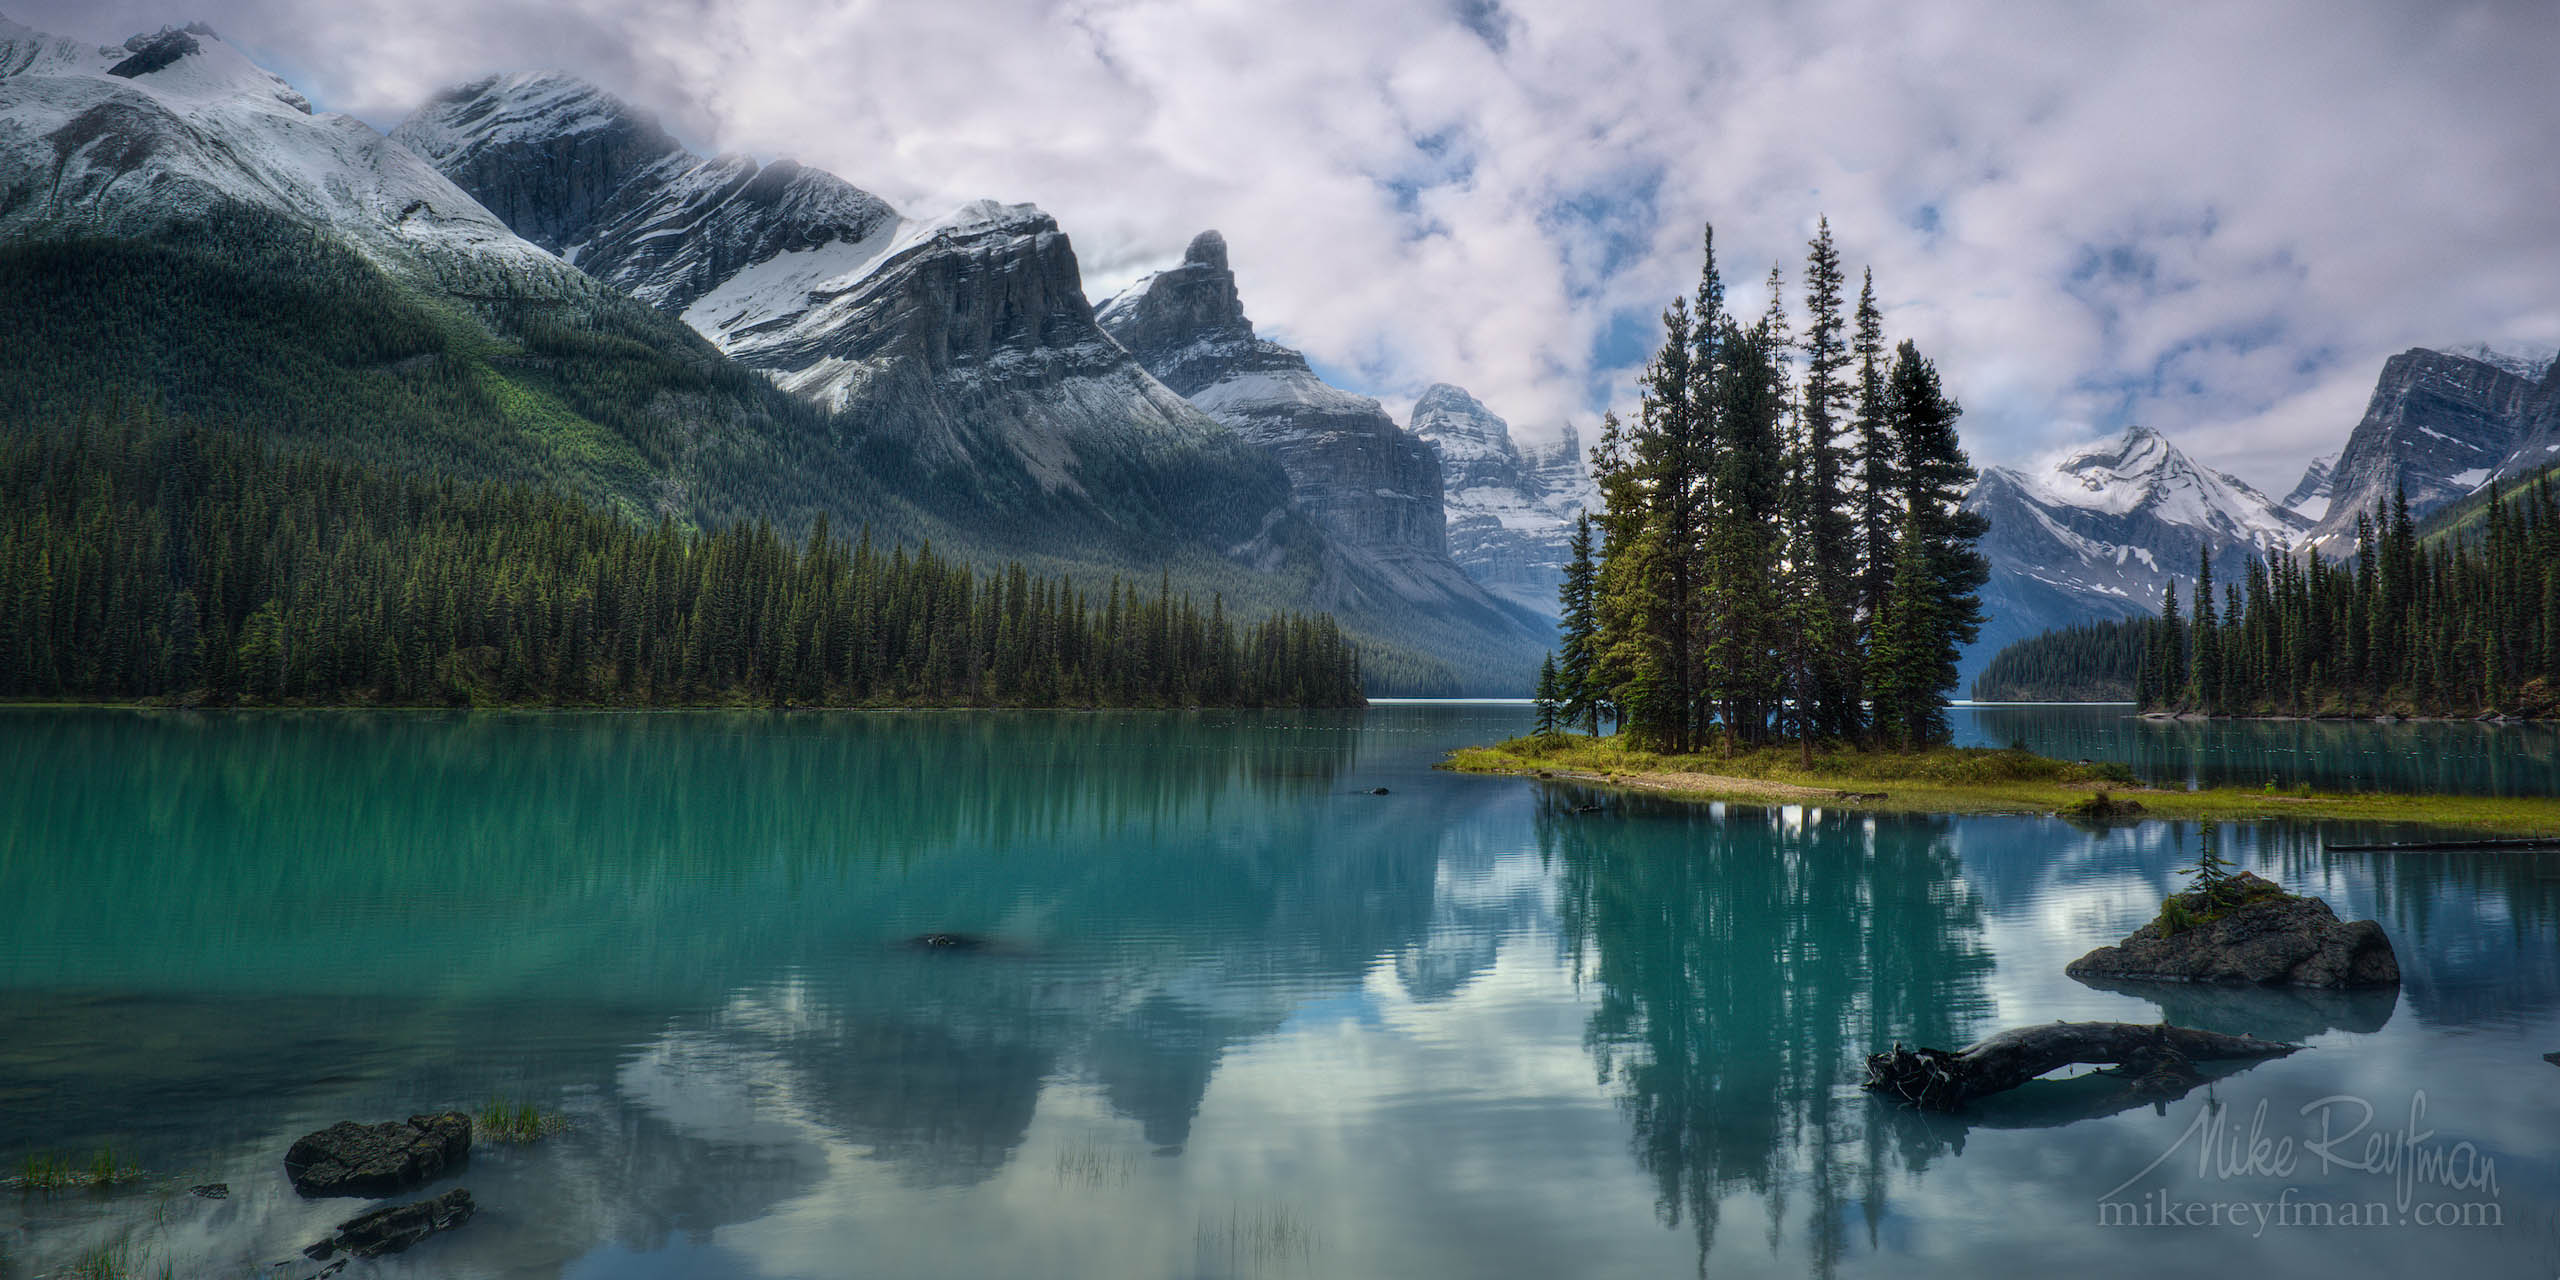 The Spirit Island. Maligne Lake, Jasper National Park, Alberta, Canada P12-MR27021-15 - Selected panoramic images with 2:1 aspect ratio - Mike Reyfman Photography